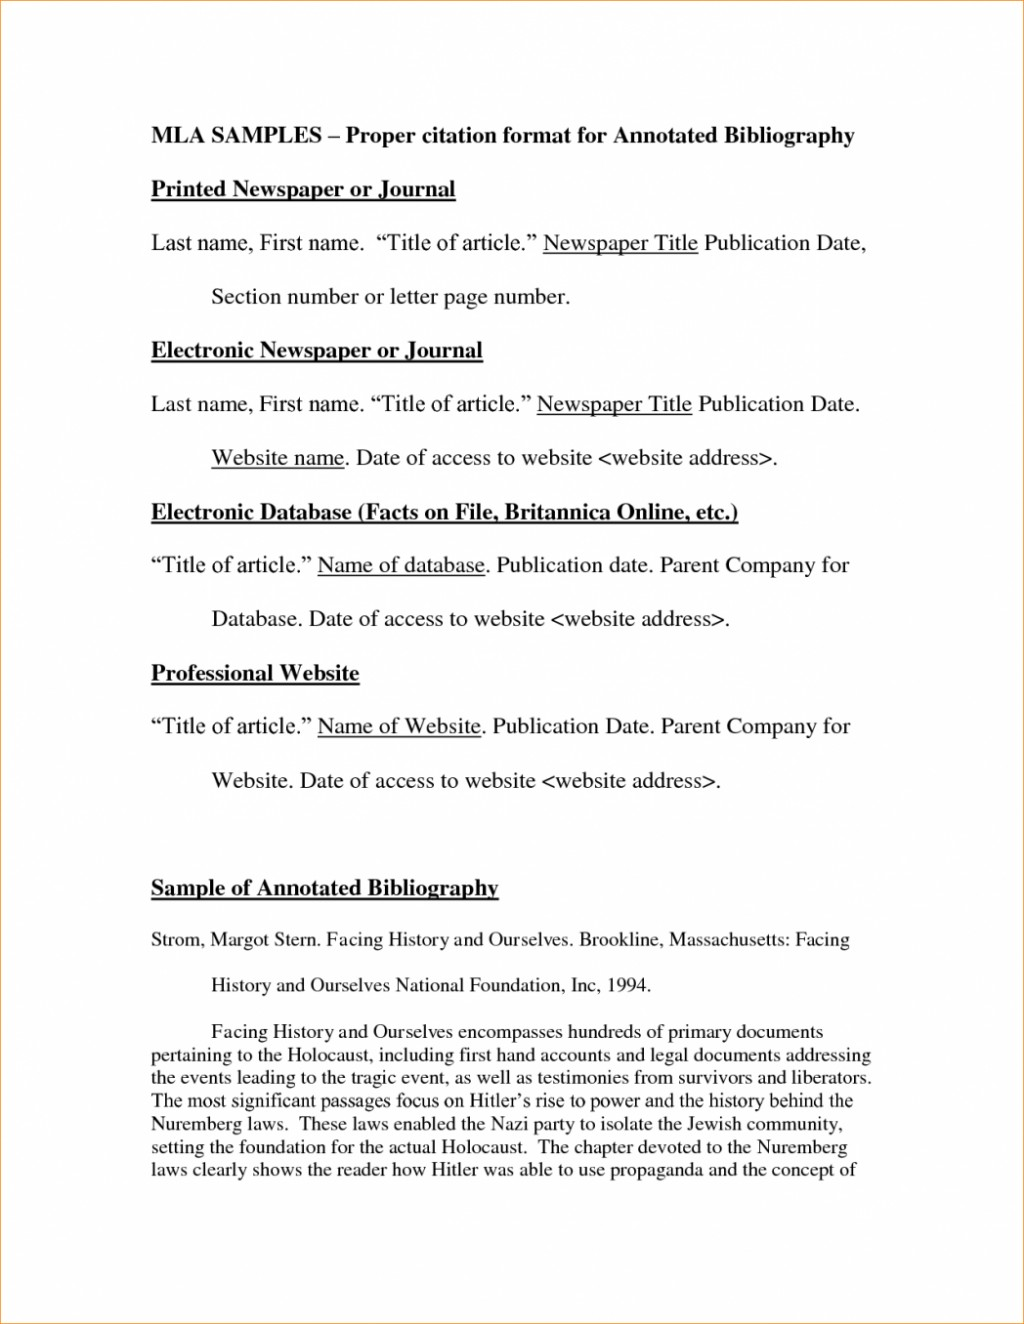 017 Essay Example Mla Format In Narrative Annotated Bibliography Template With Cover Page Title Works Cited Argumentative Persuasive Pdf 1048x1356 Beautiful Sample 2017 Comparison Large